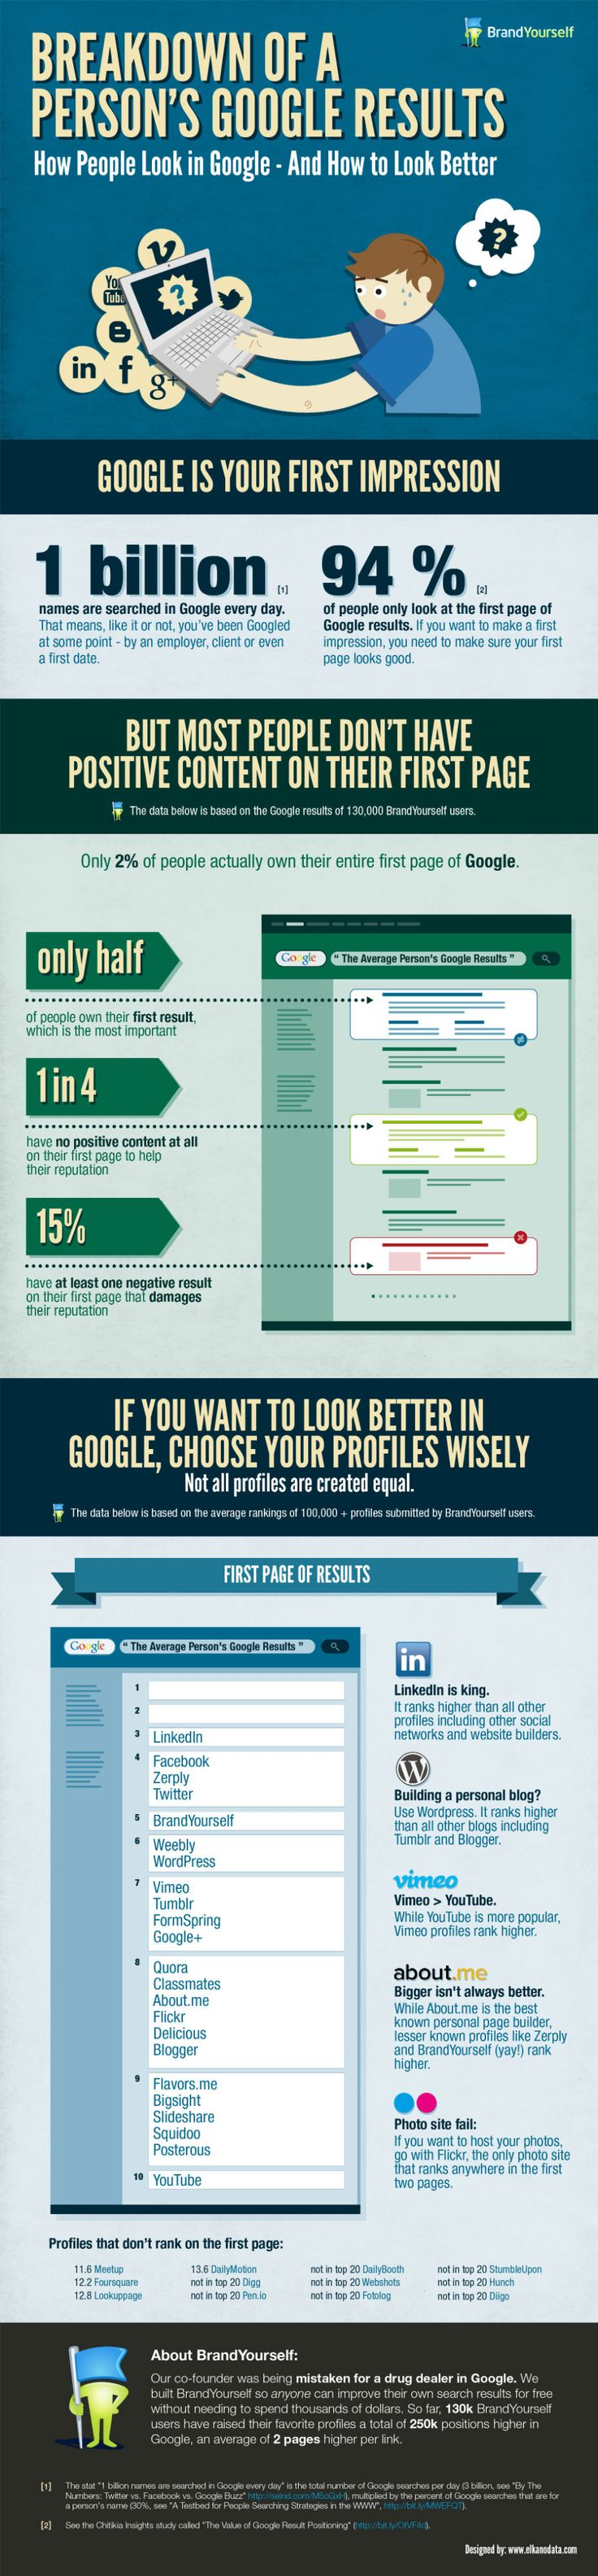 How people look in Google - And how to look better